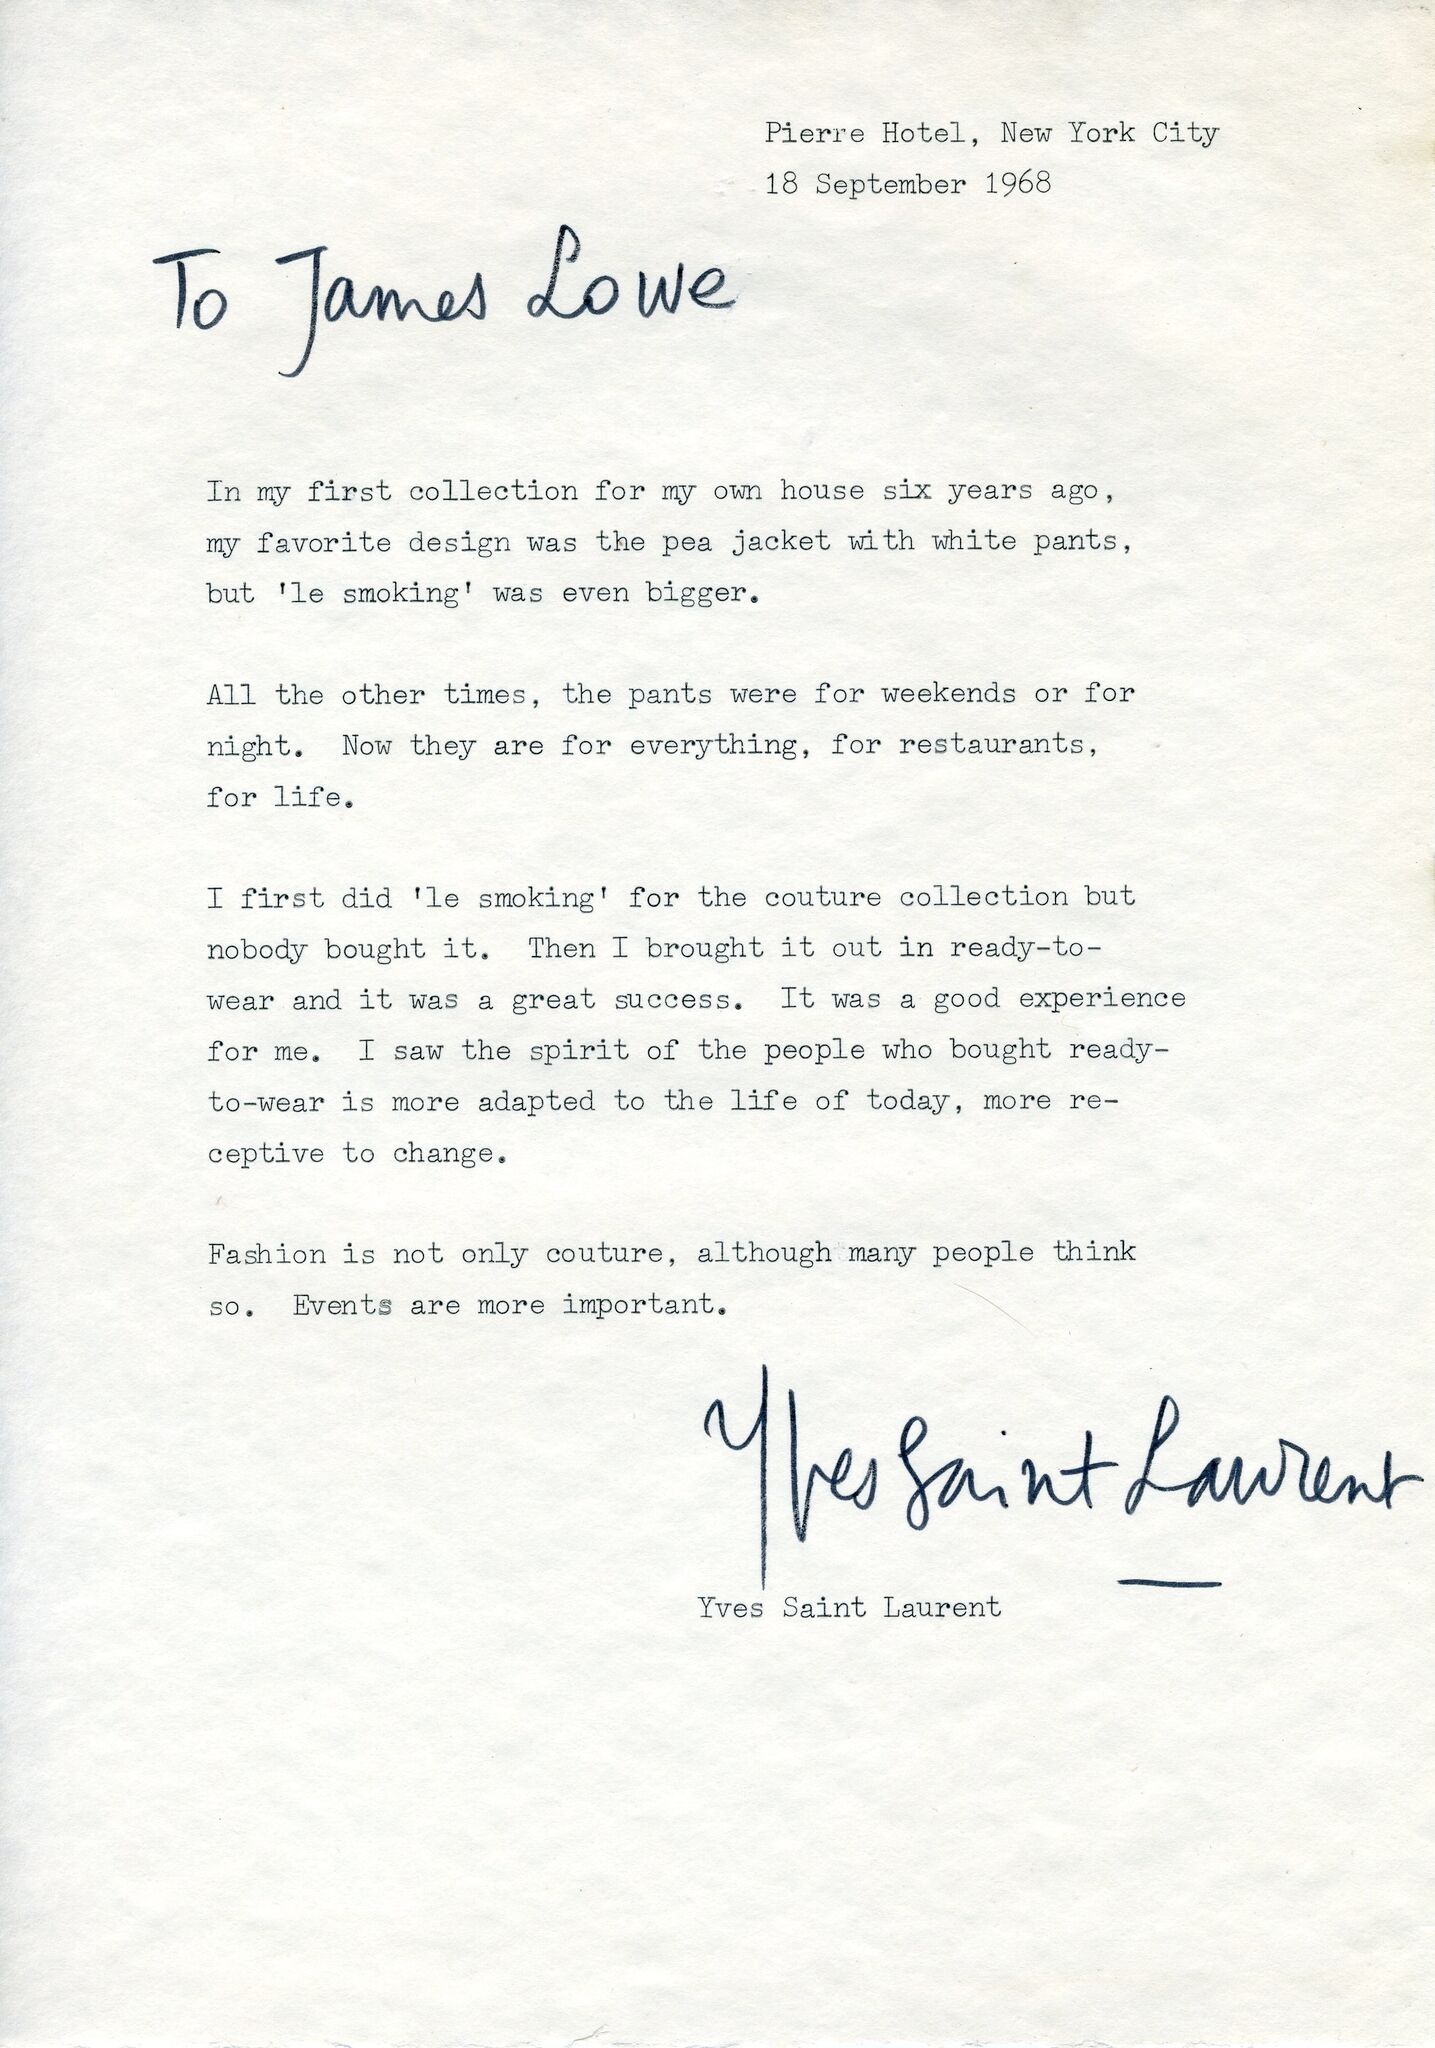 Important Signed Letter, September 18, 1968